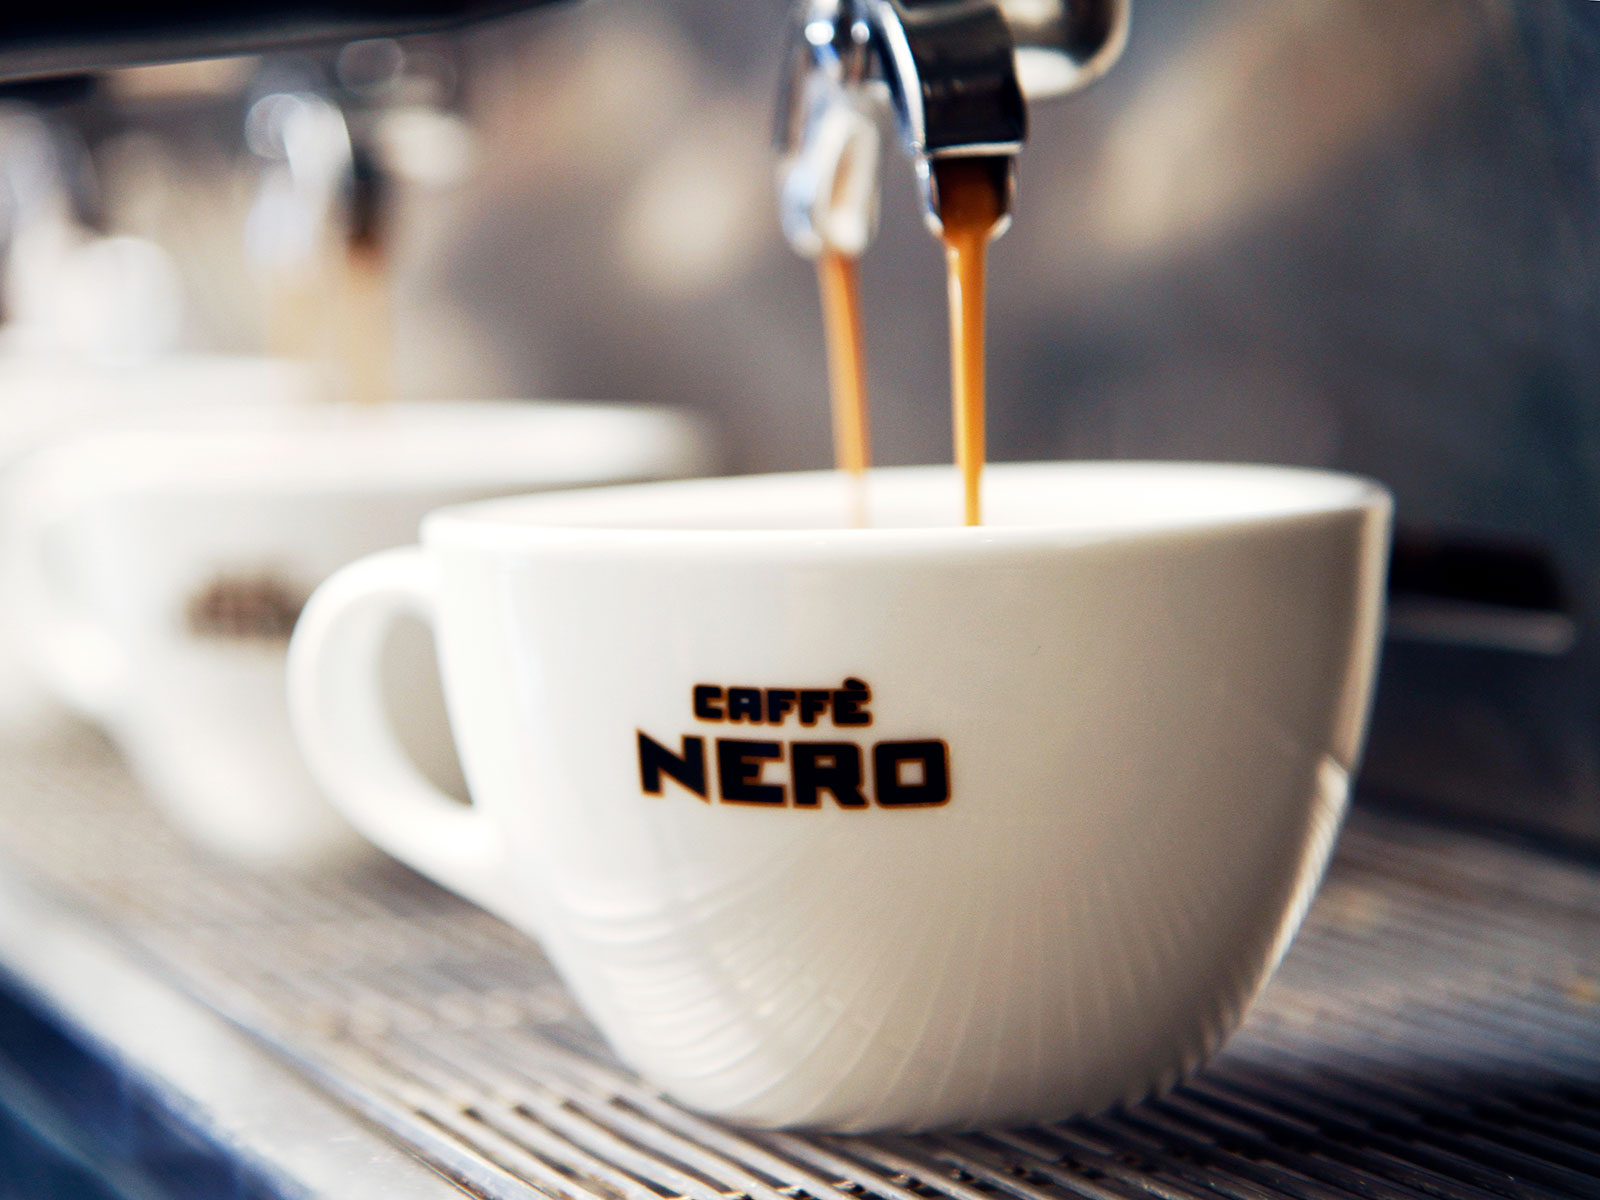 caffe nero coming to the united states